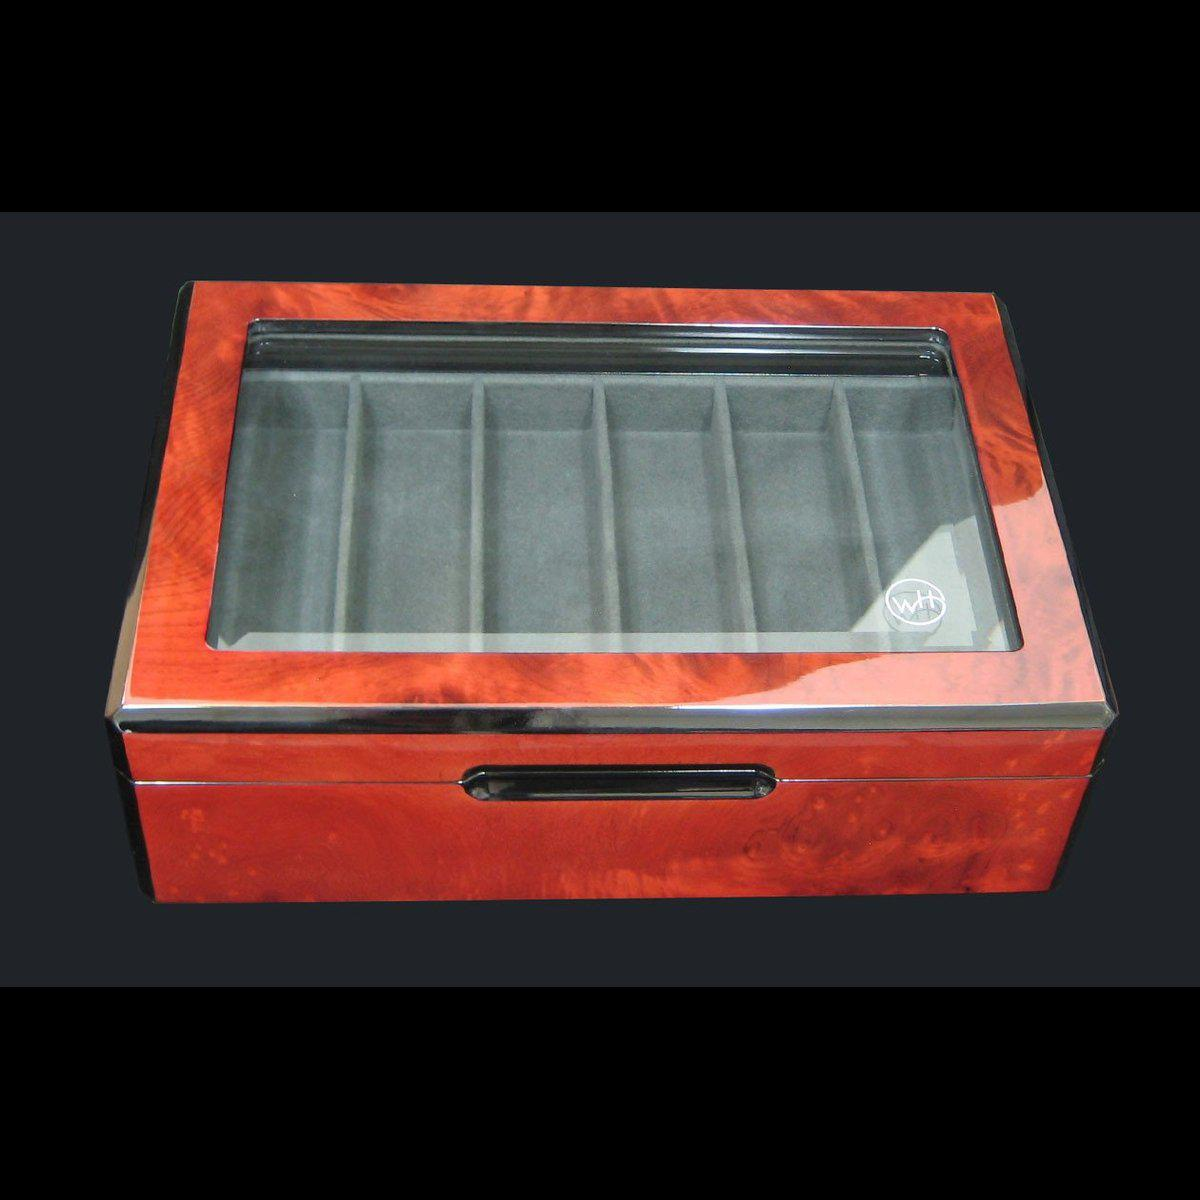 Collector Display Case - COLLECTOR'S BOX 3-William Henry-Renee Taylor Gallery